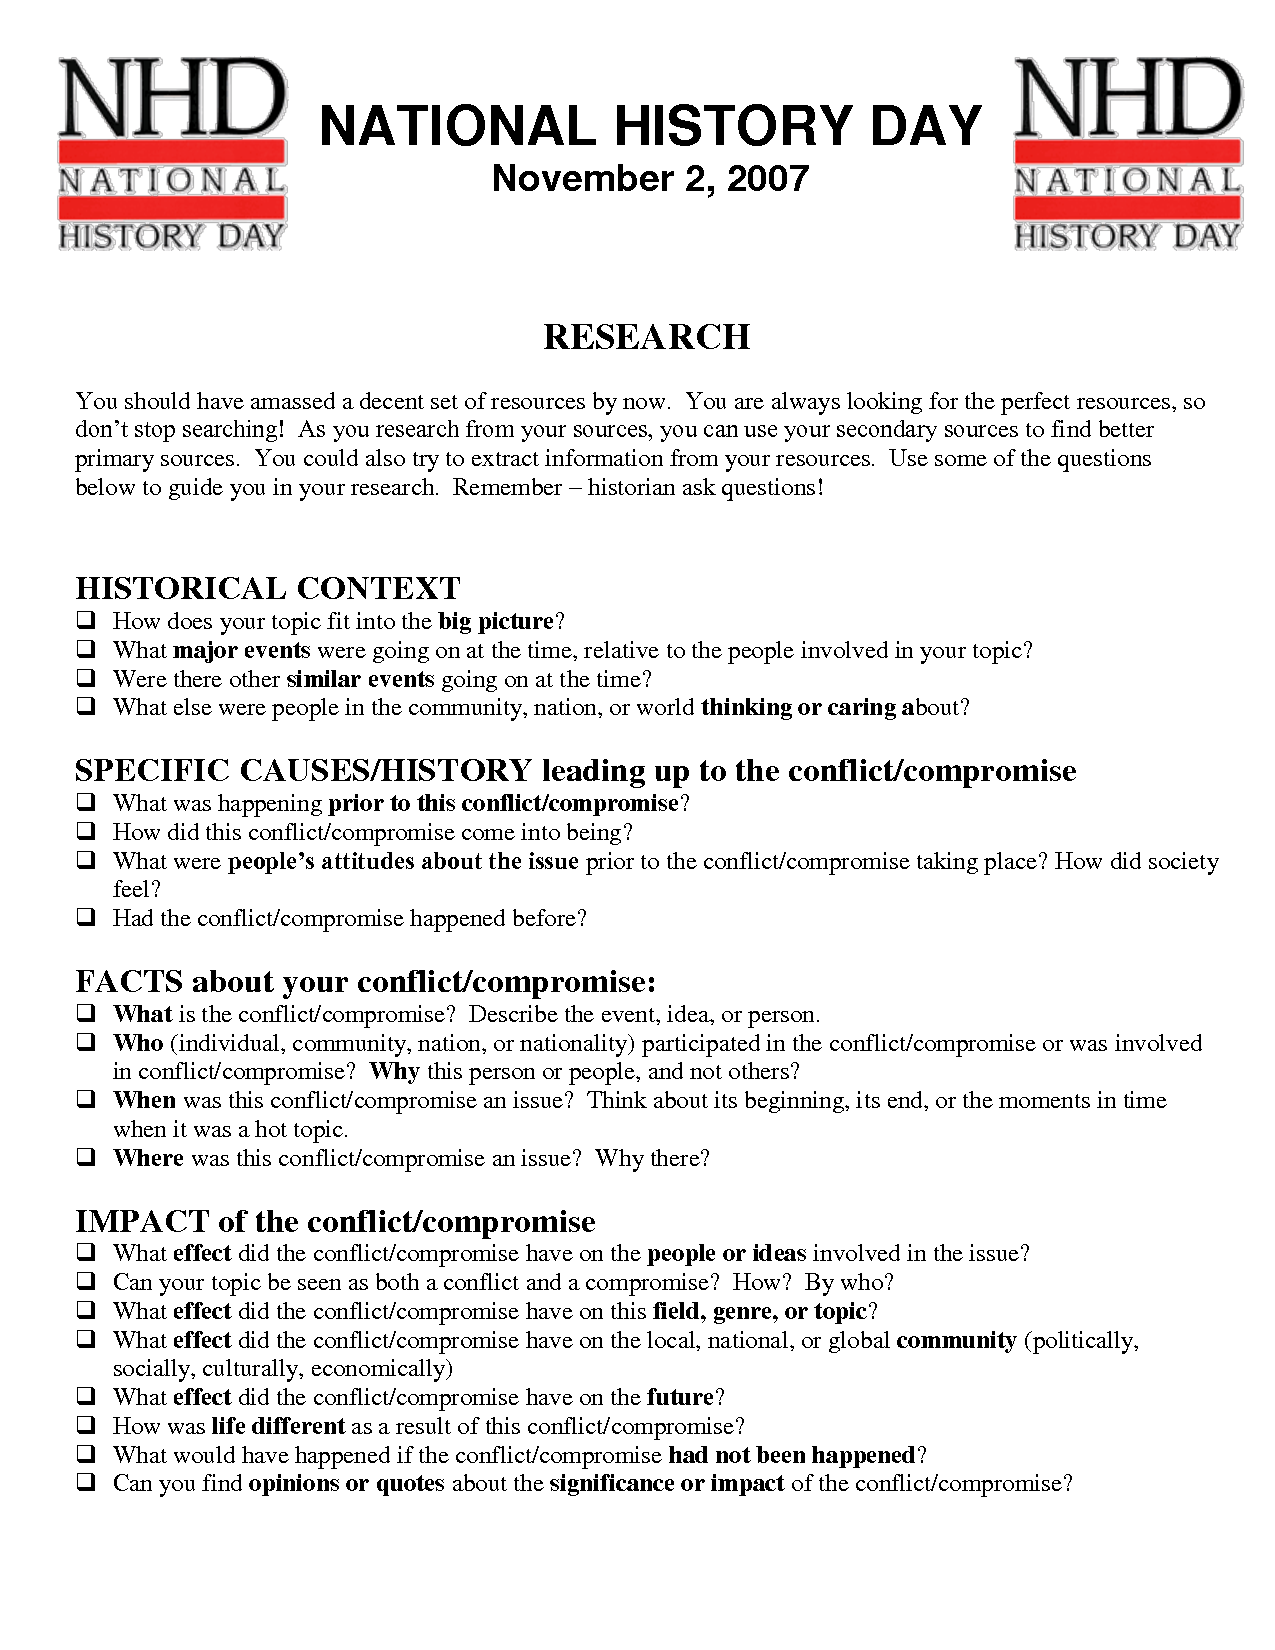 007 College Essays Application Example Of Examples Process Essay Topics L Marvelous For Middle School Funny Full